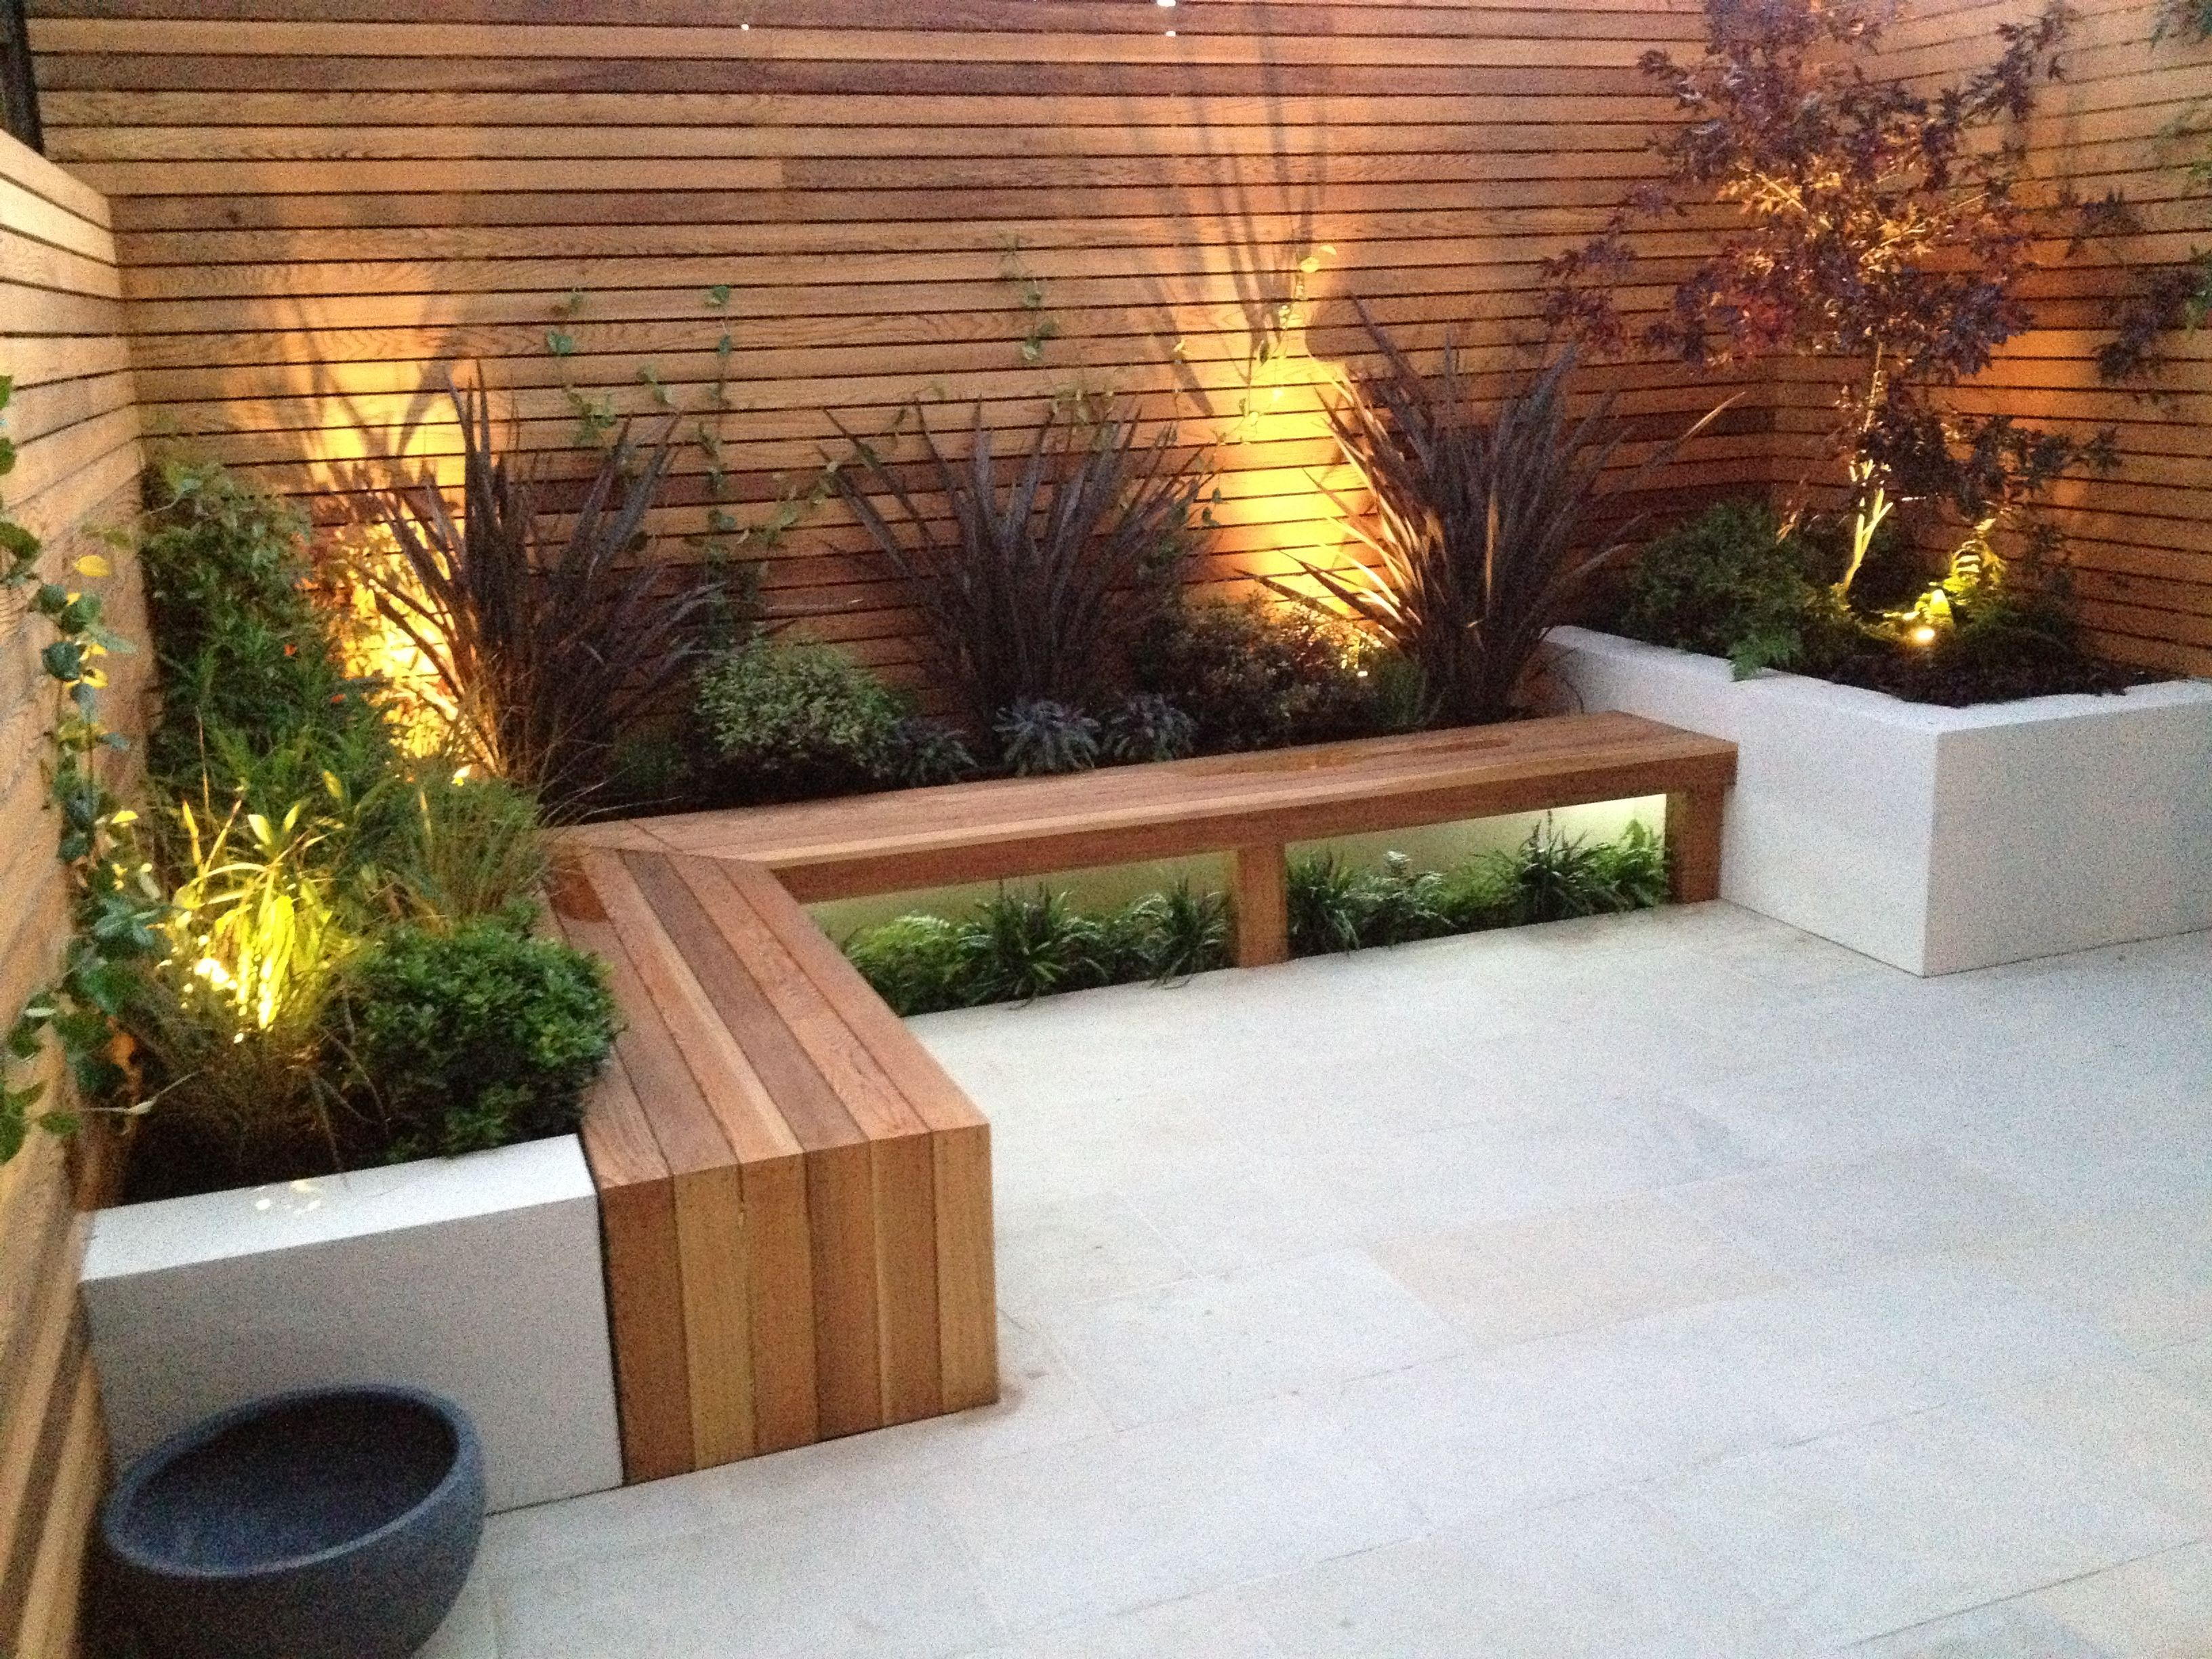 3 - L-shape bench as per drawing b, with integrated planter 4 - Nice ...